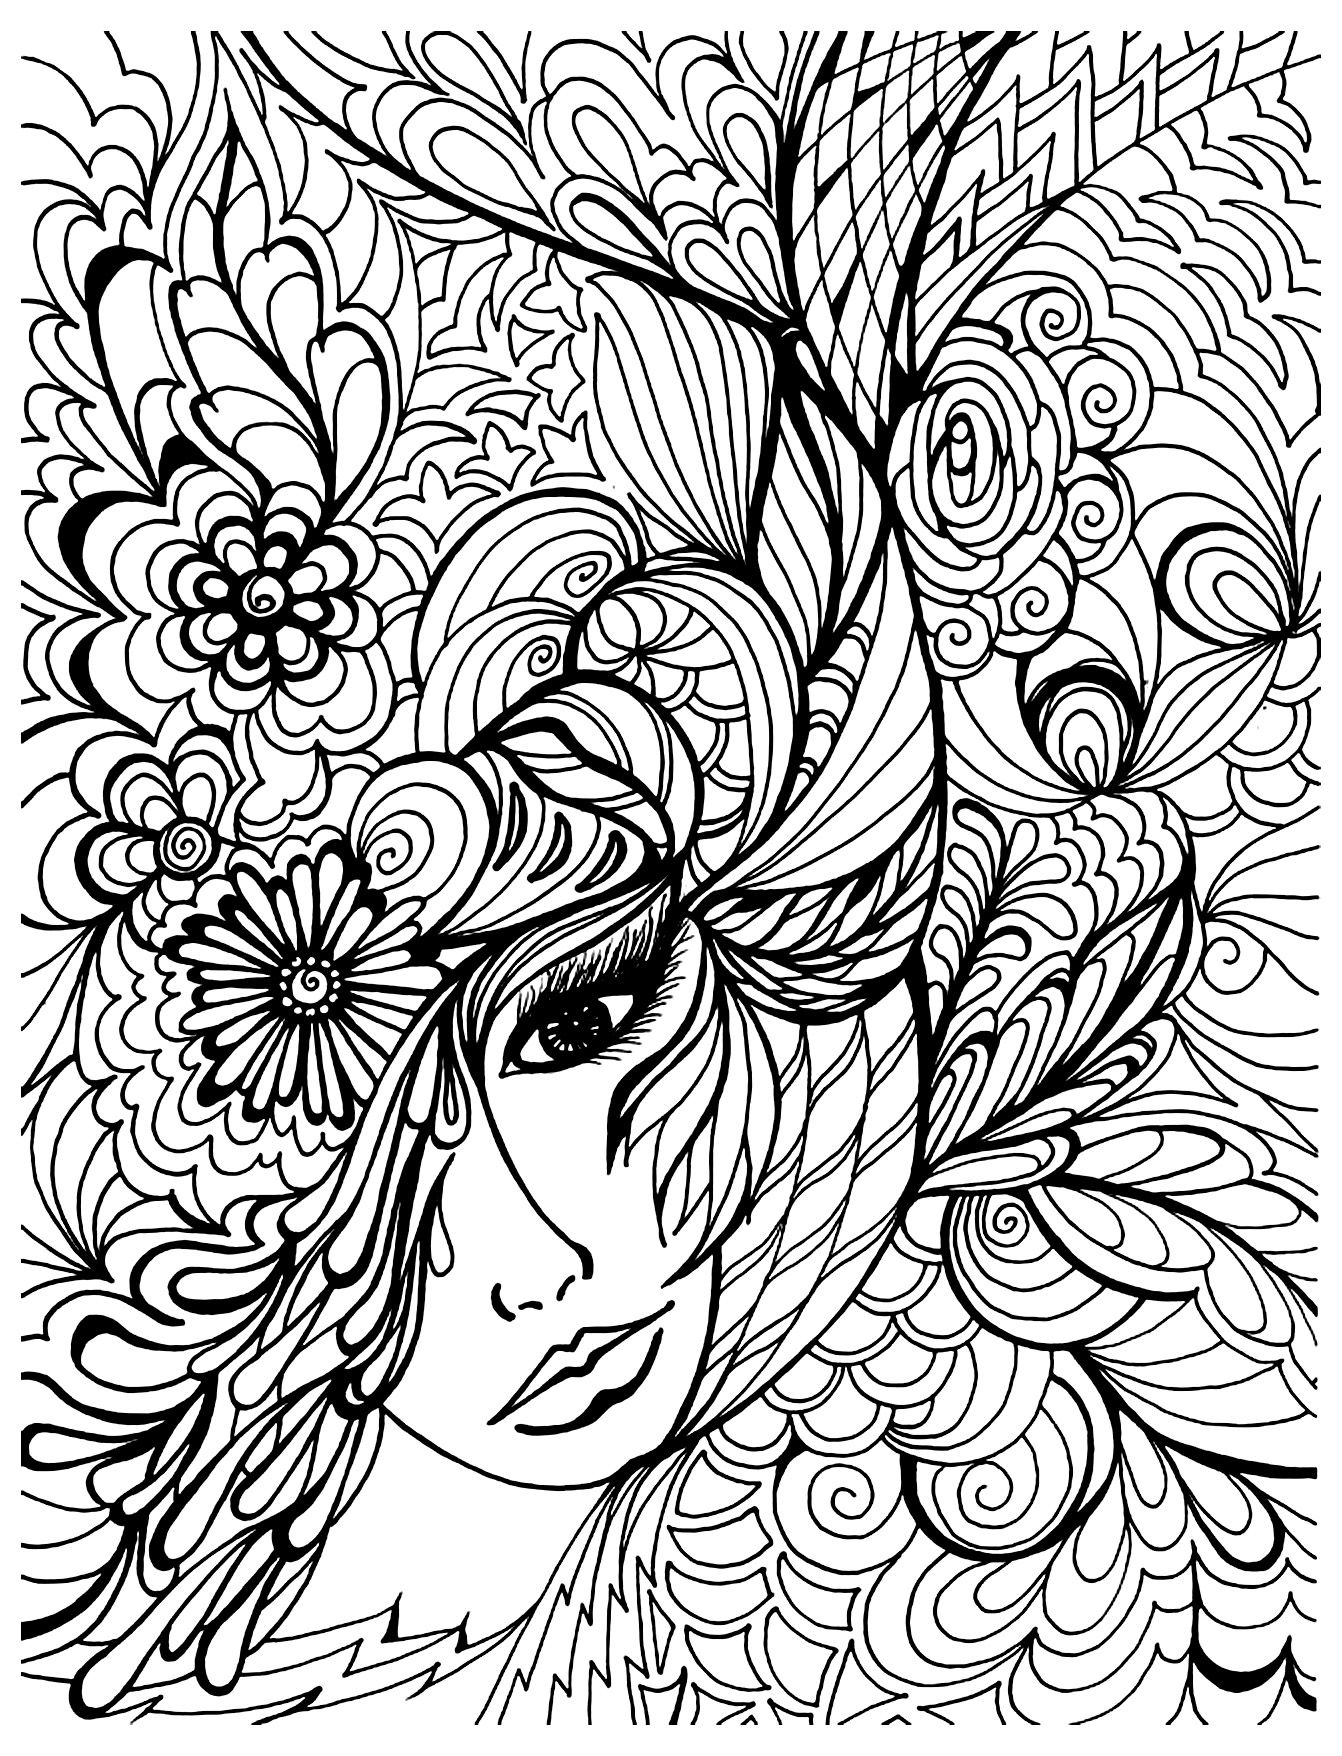 Zen coloring books for adults app - Find This Pin And More On Adult Coloring Pages